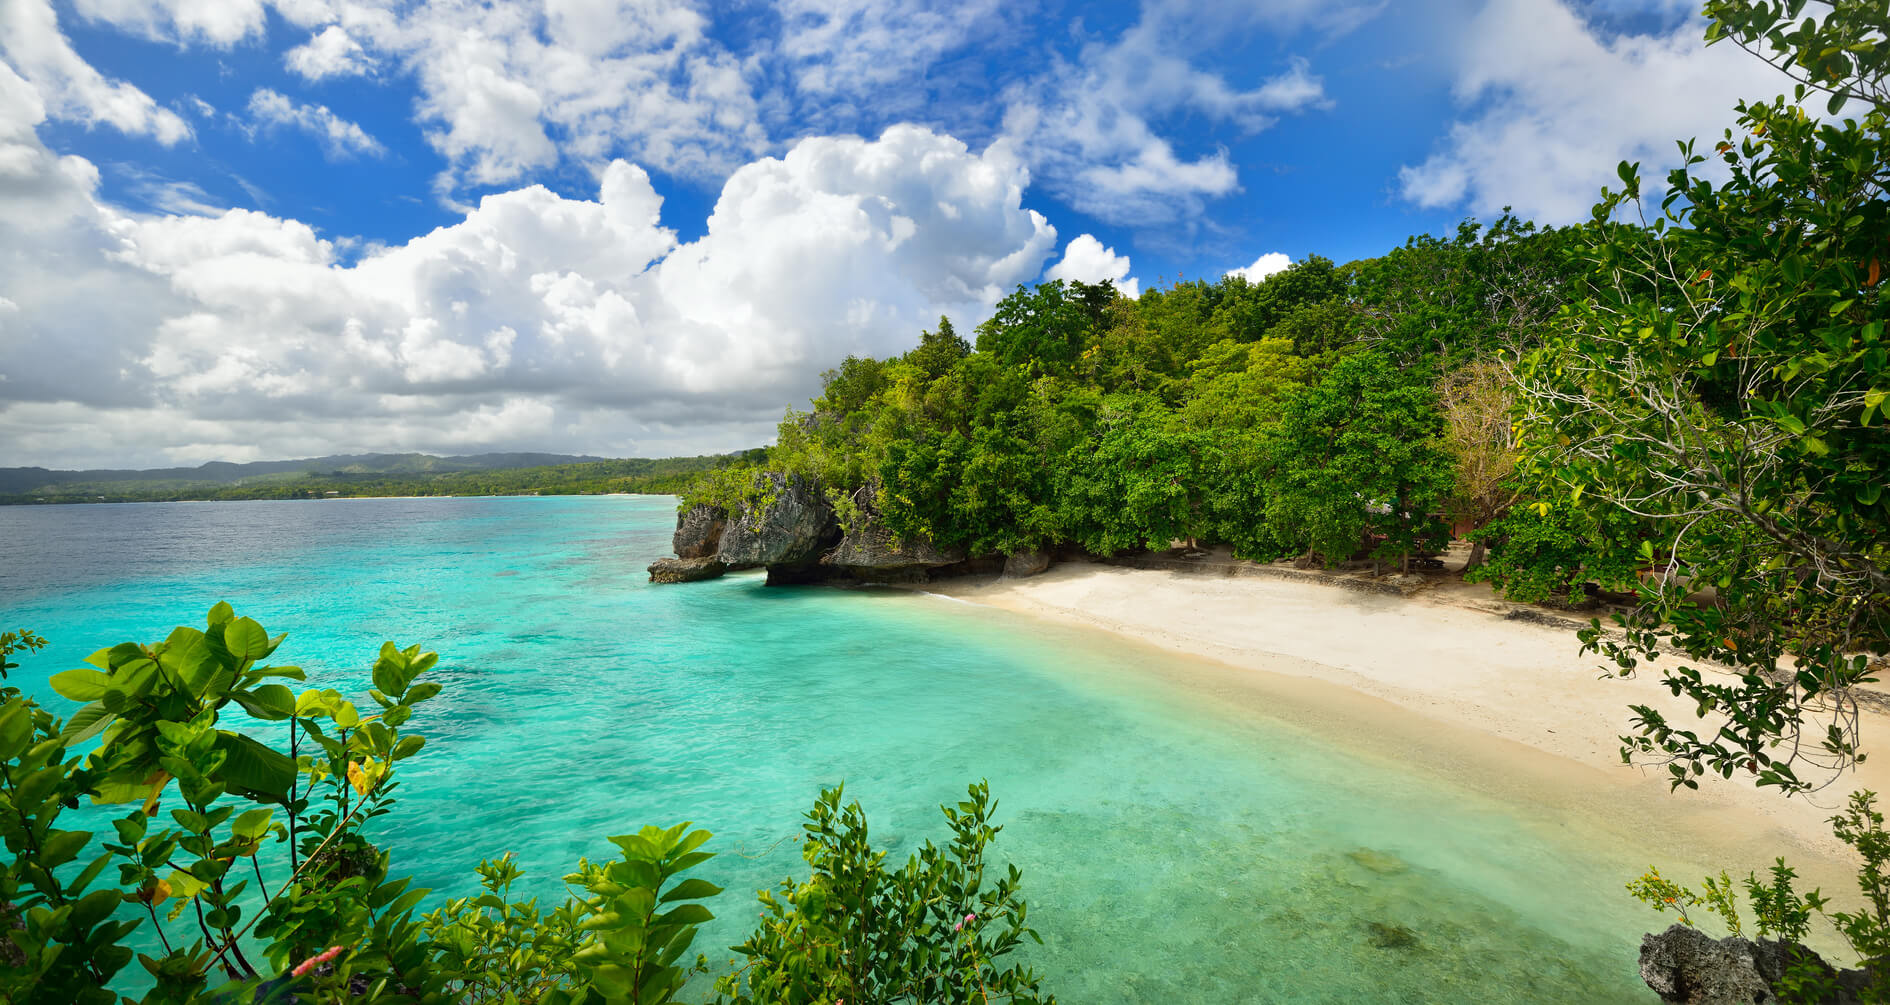 Philippines - 5 CHEAPEST PLACES TO TEACH ENGLISH ABROAD